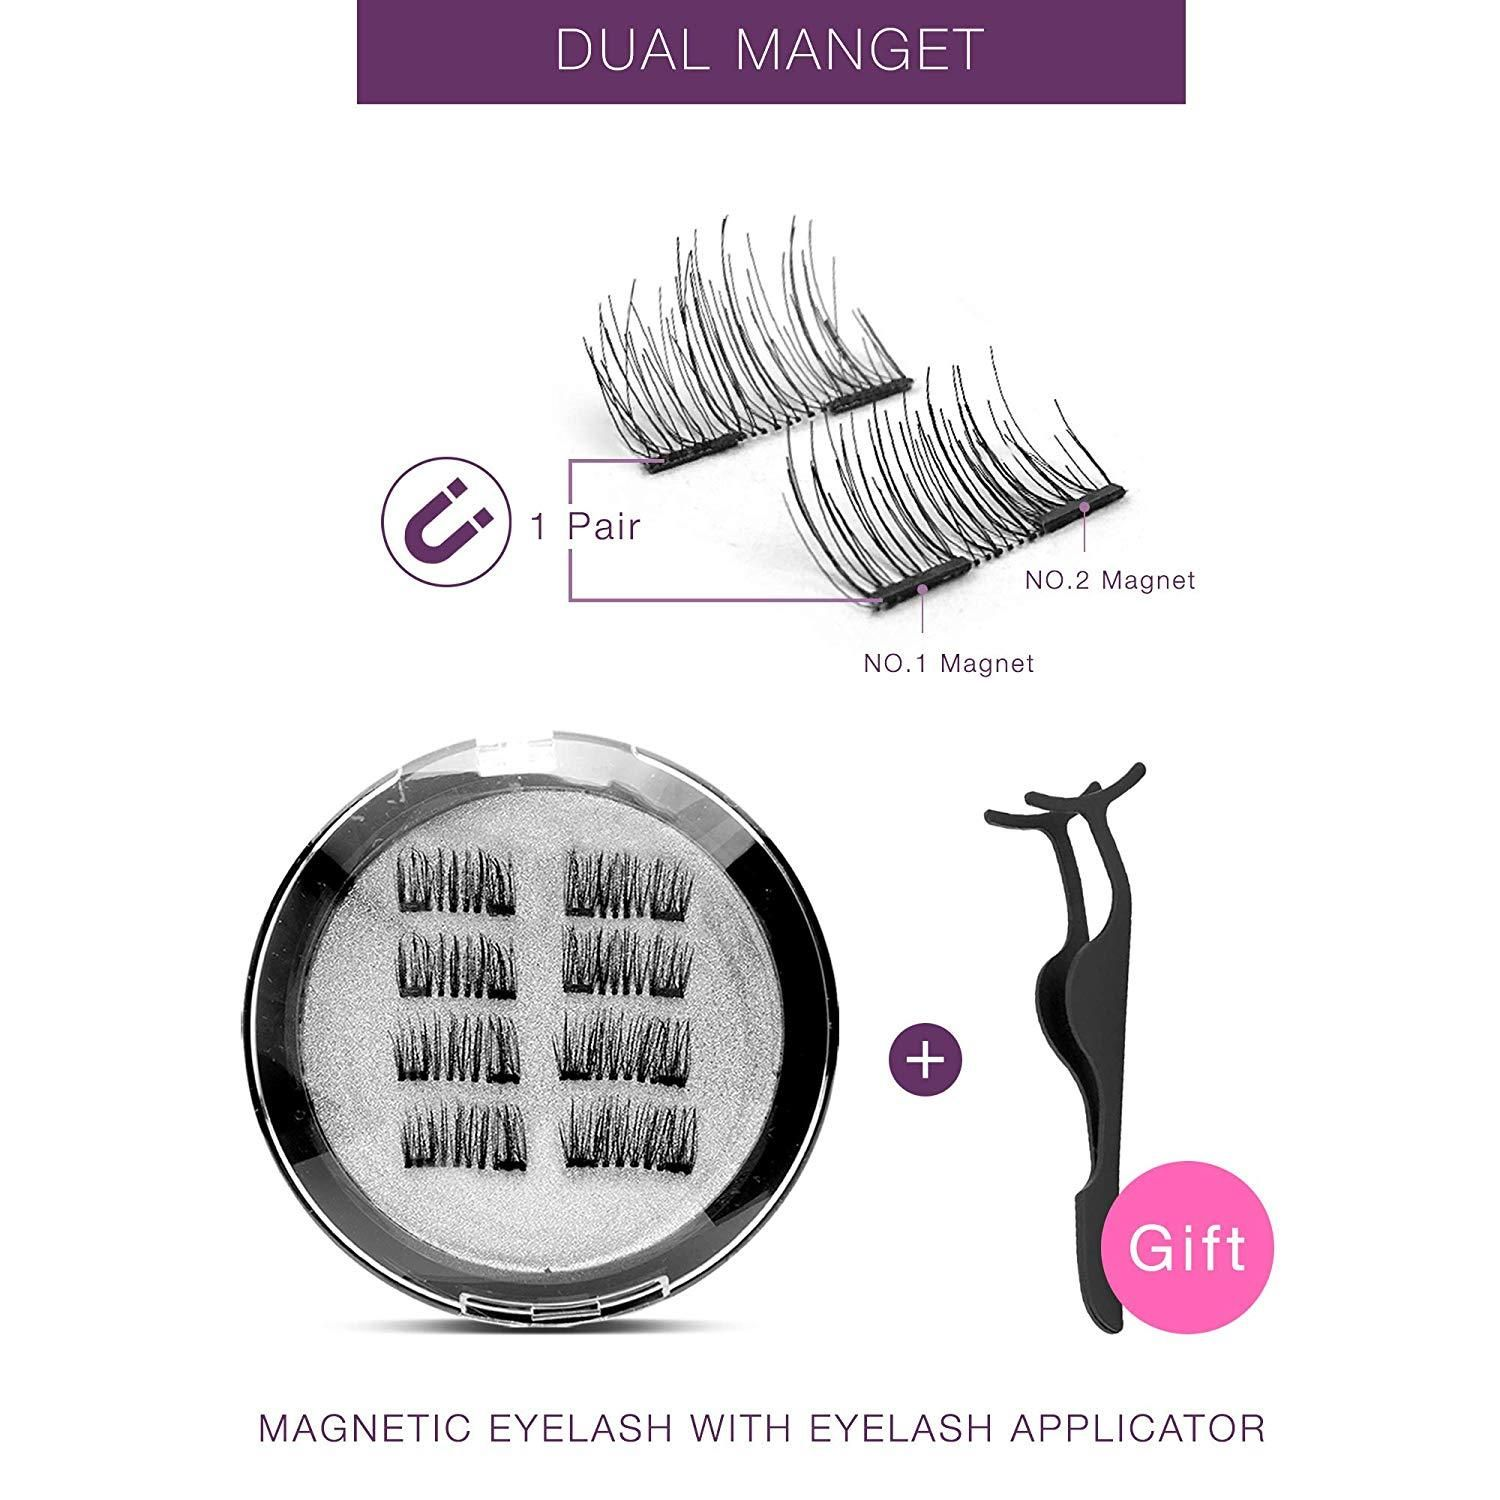 b4dab2357b0 3D Reusable Dual Magnetic Eyelashes with Applicator, New Version in ...